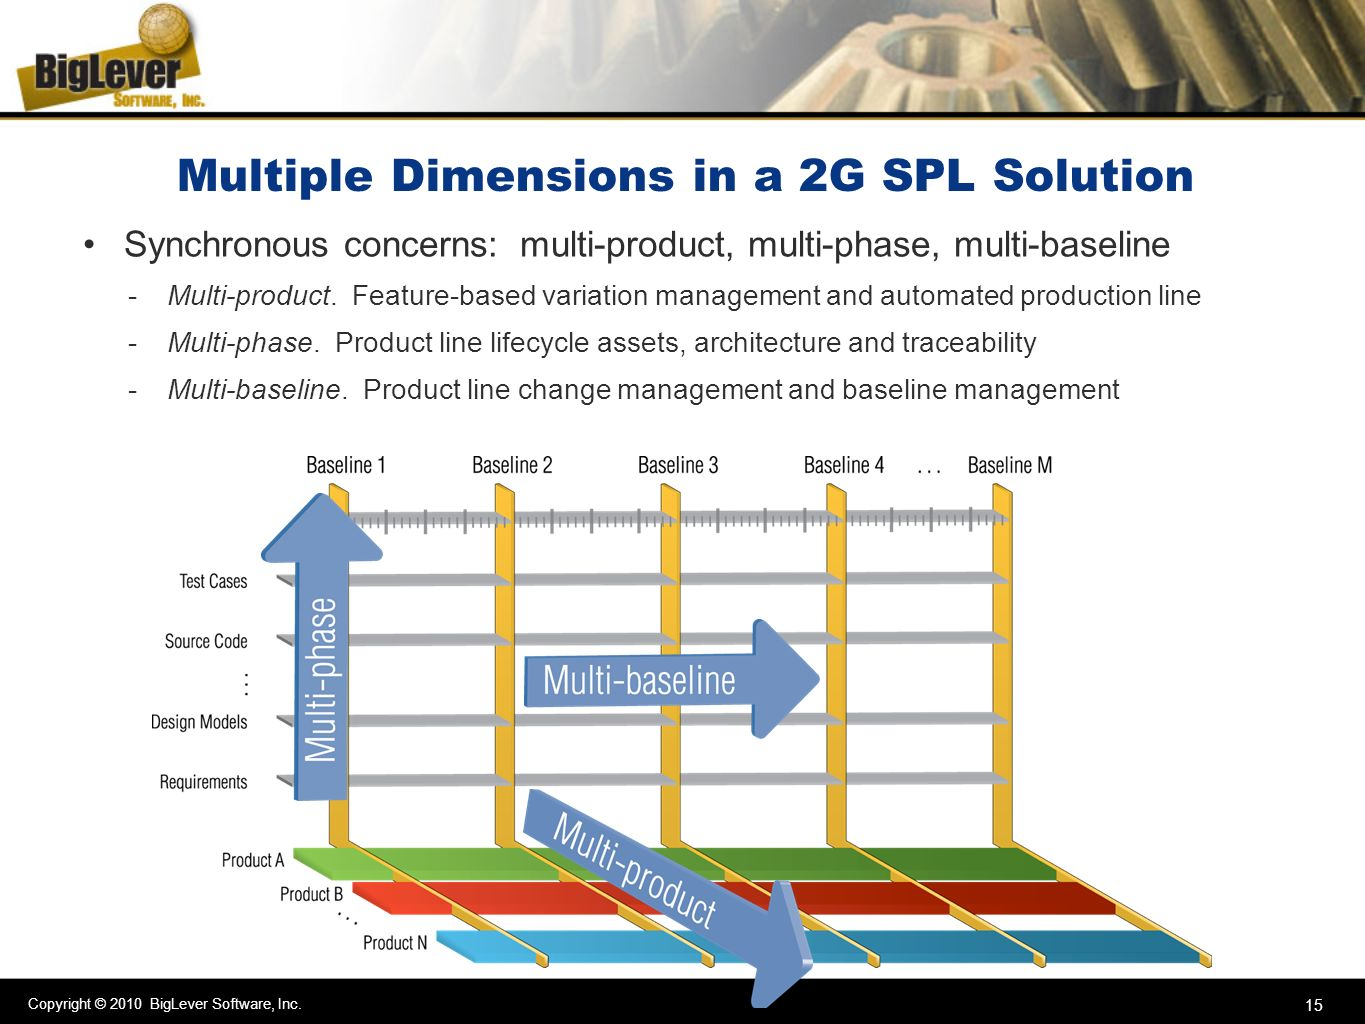 Multiple Dimensions in a 2G SPL Solution